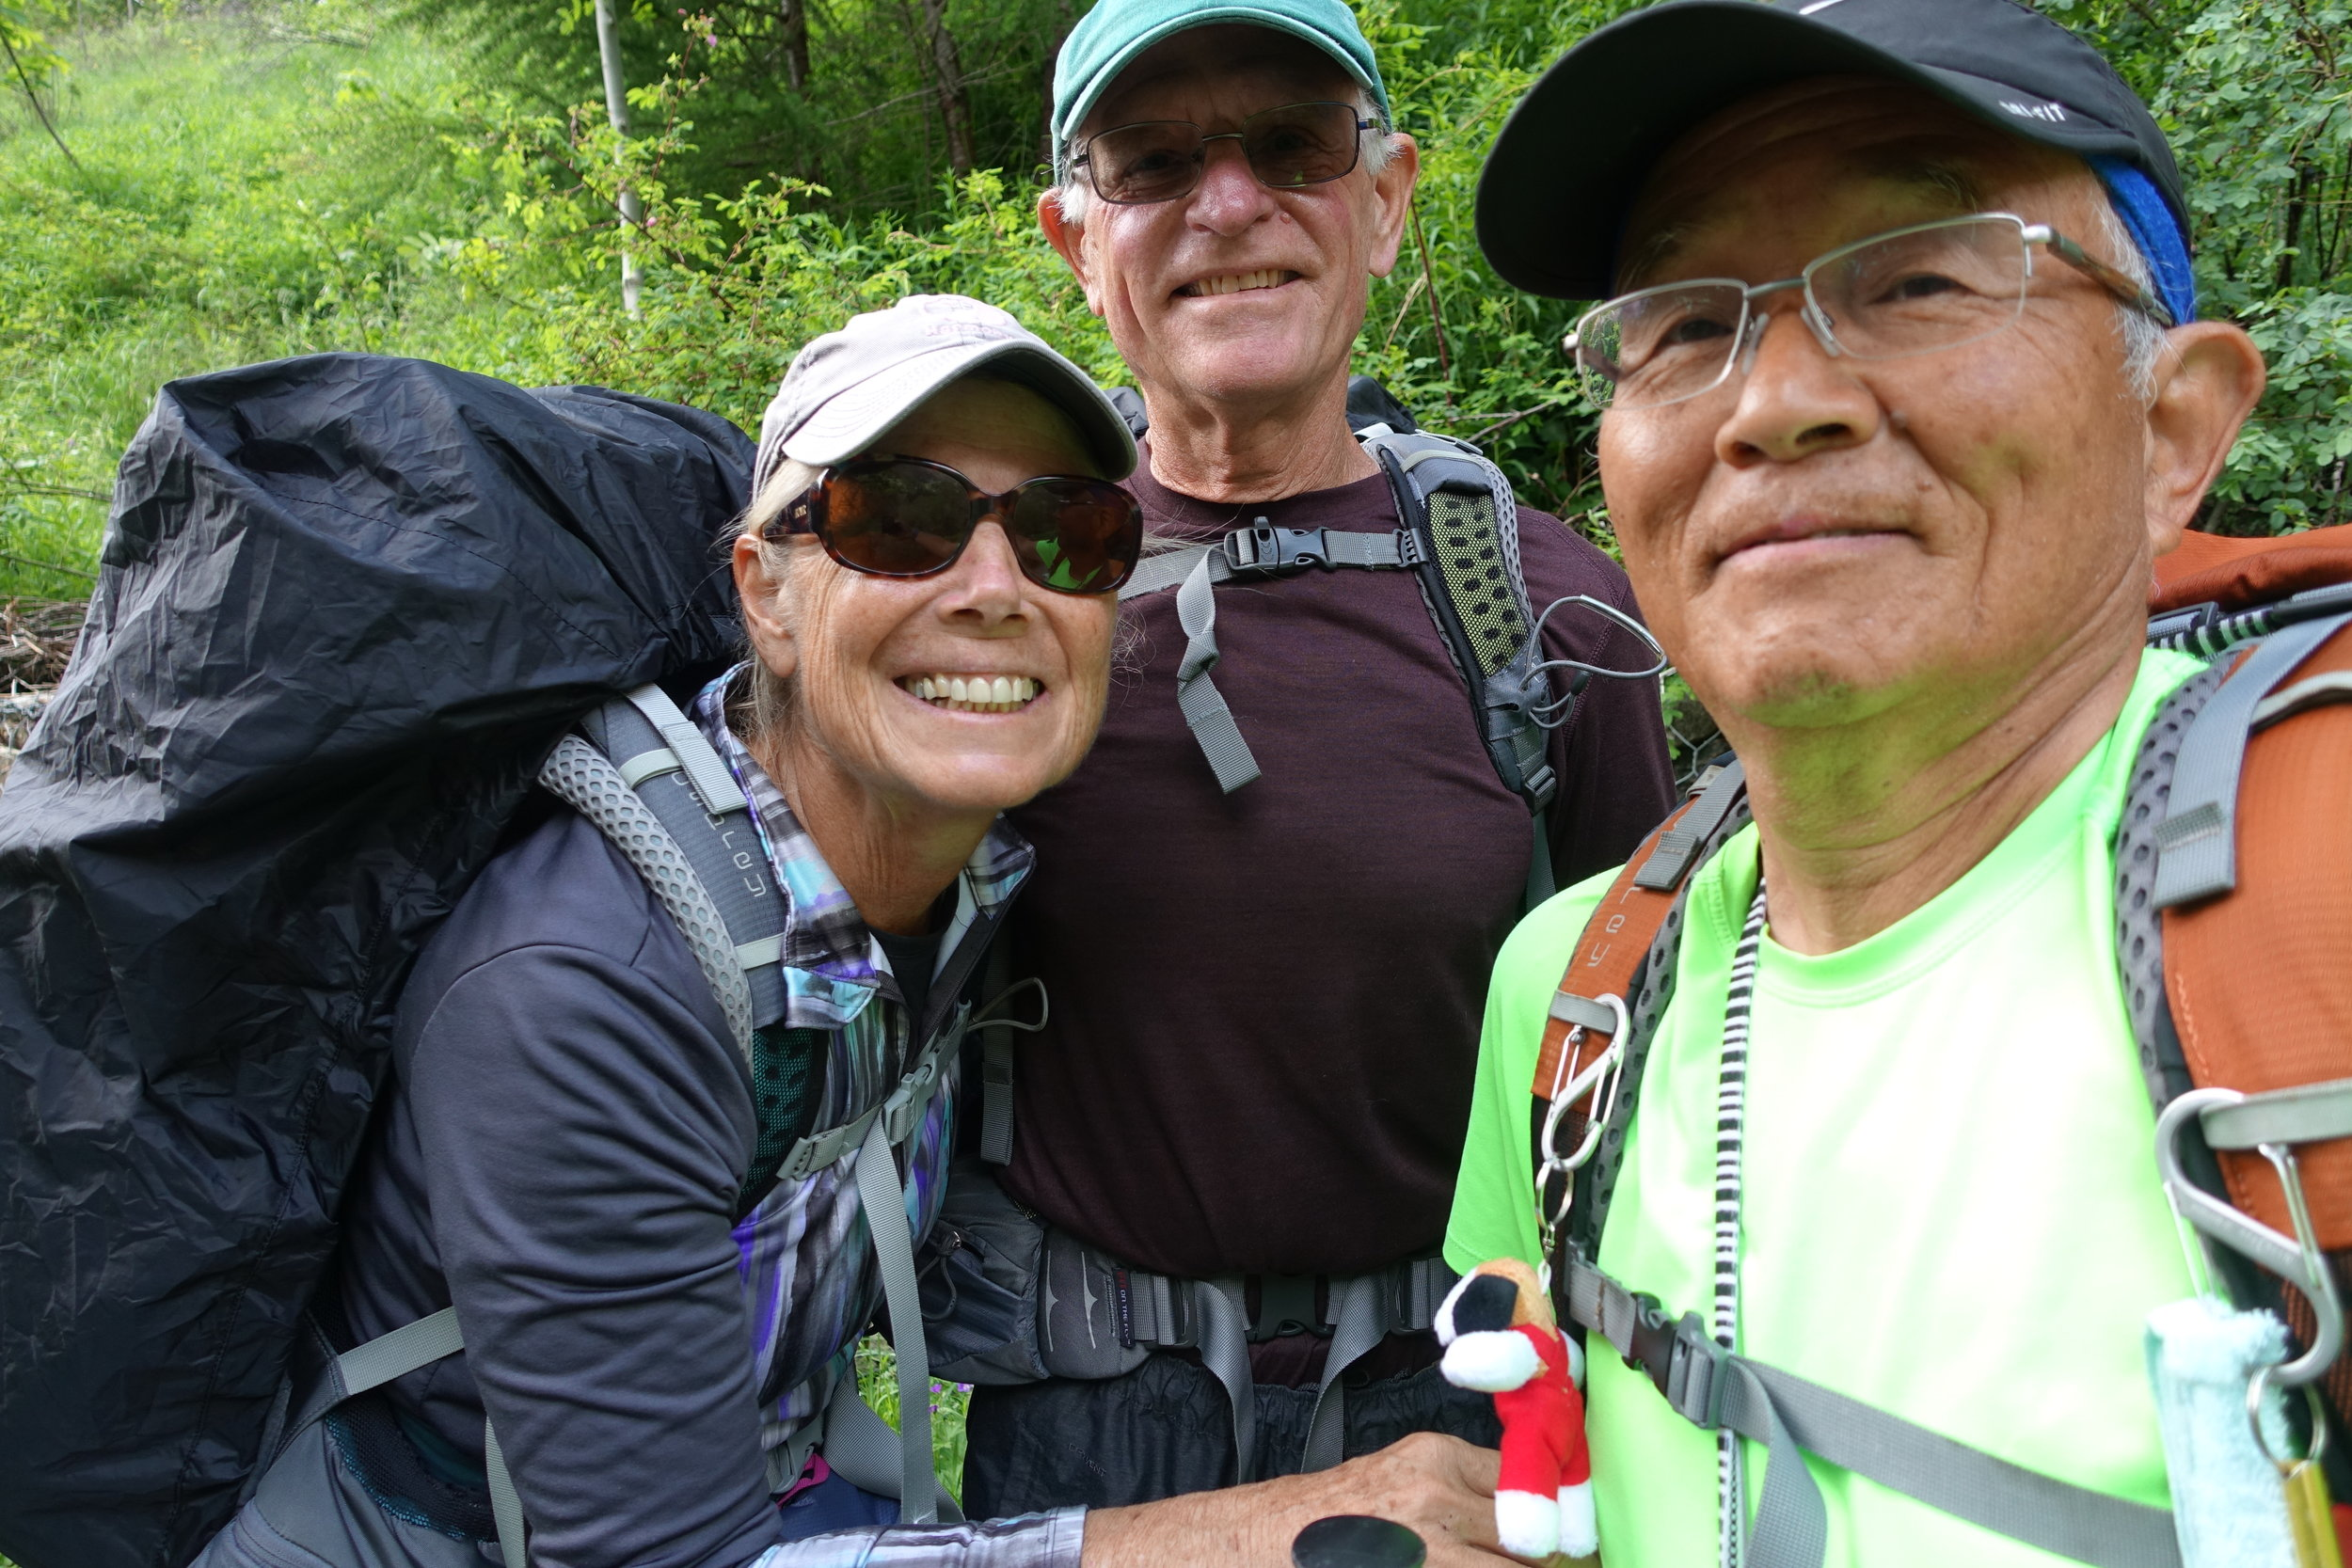 We met a total of 11 pilgrims today, most coming down from the Pass. We had a pleasant chat with Moto Imanishi, a Japanese man celebrating his 70th birthday on the Via Francigena. He took a selfie and sent us a copy … thanks, Moto!